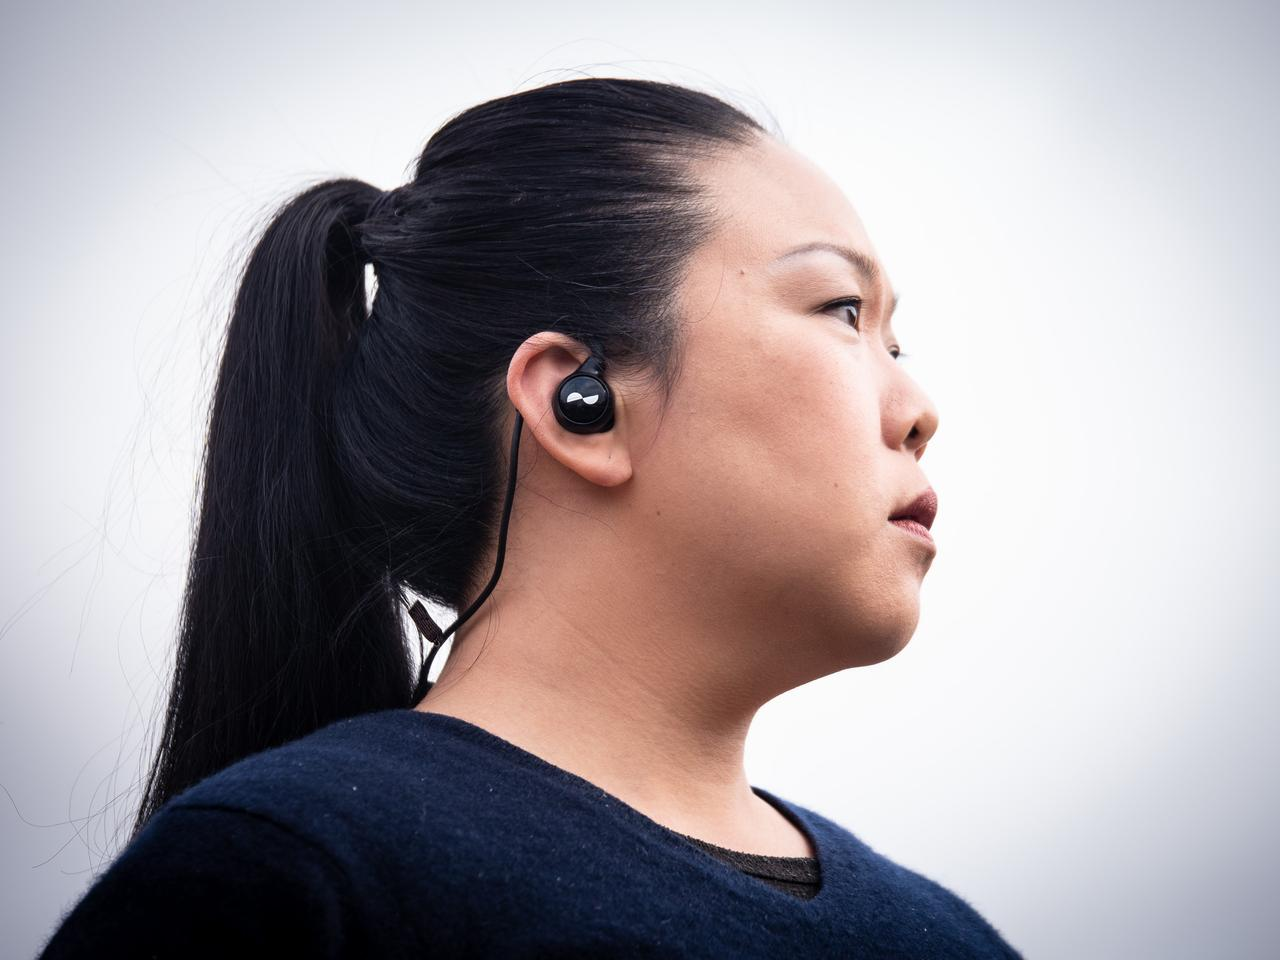 The loop behind your neck can foul collars and hoodies, sometimes feeling like it'll push the earbuds out, but the problem largely goes away when you bend the ear hooks to hold your ears more securely